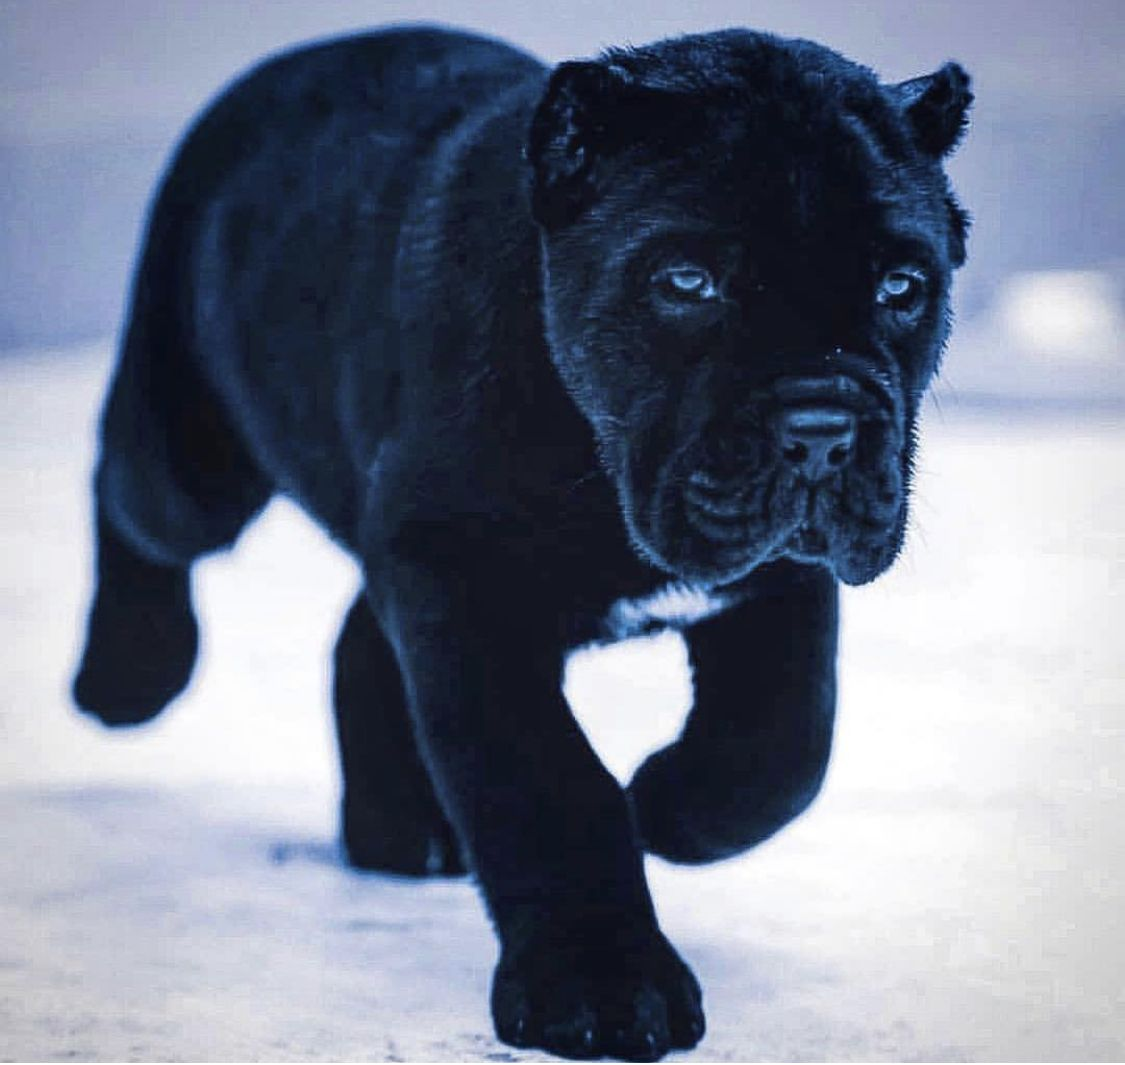 Pin By Richard Thompson On Puppies Aww Look At The Poo Poos Cane Corso Puppies Corso Dog Baby Dogs